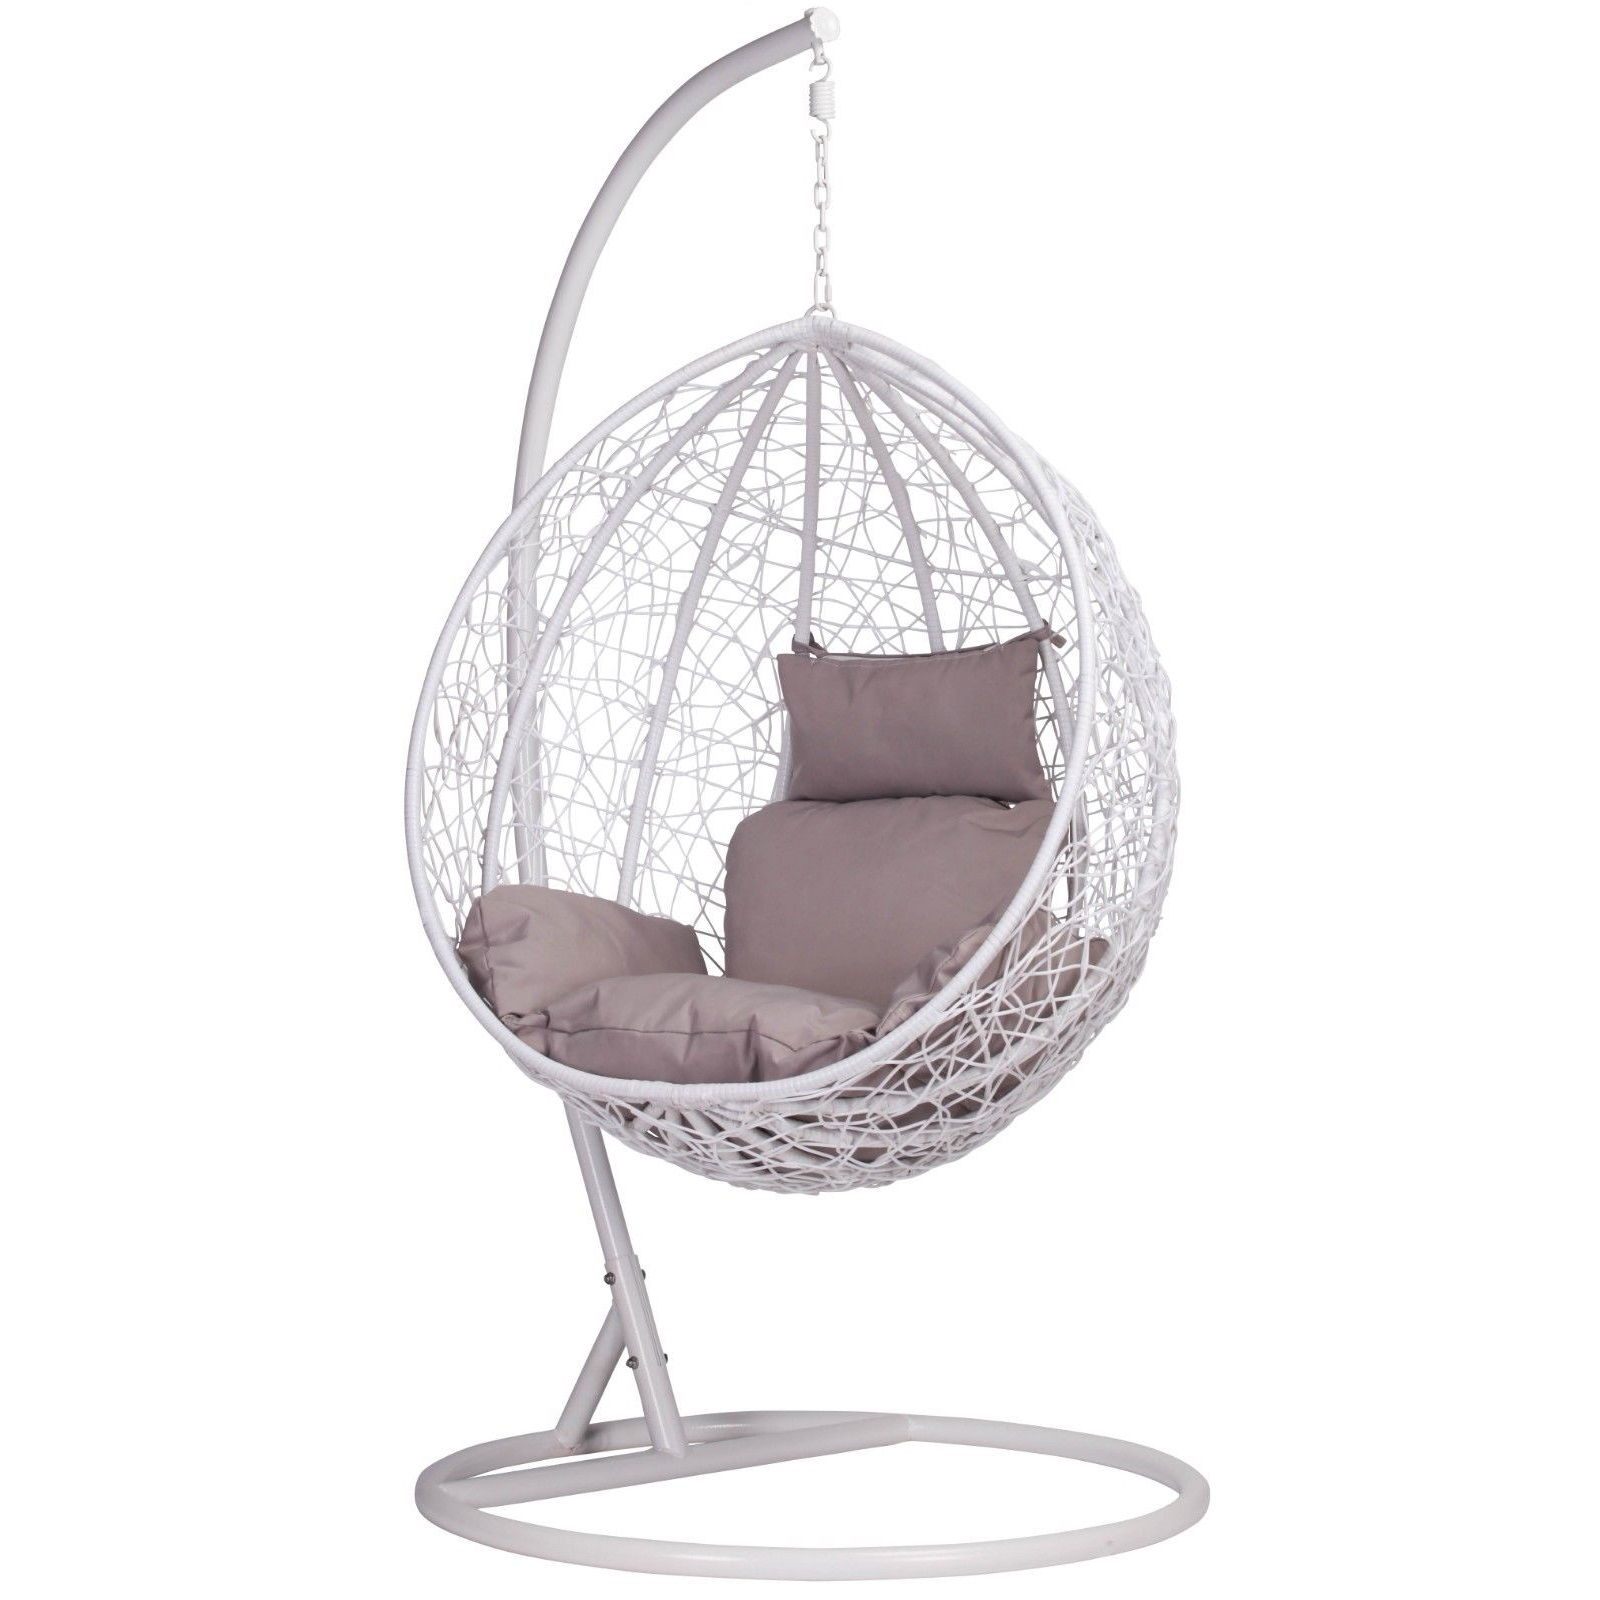 Egg Basket Chair White Rattan Swing Weave Patio Garden Hanging Egg Chair